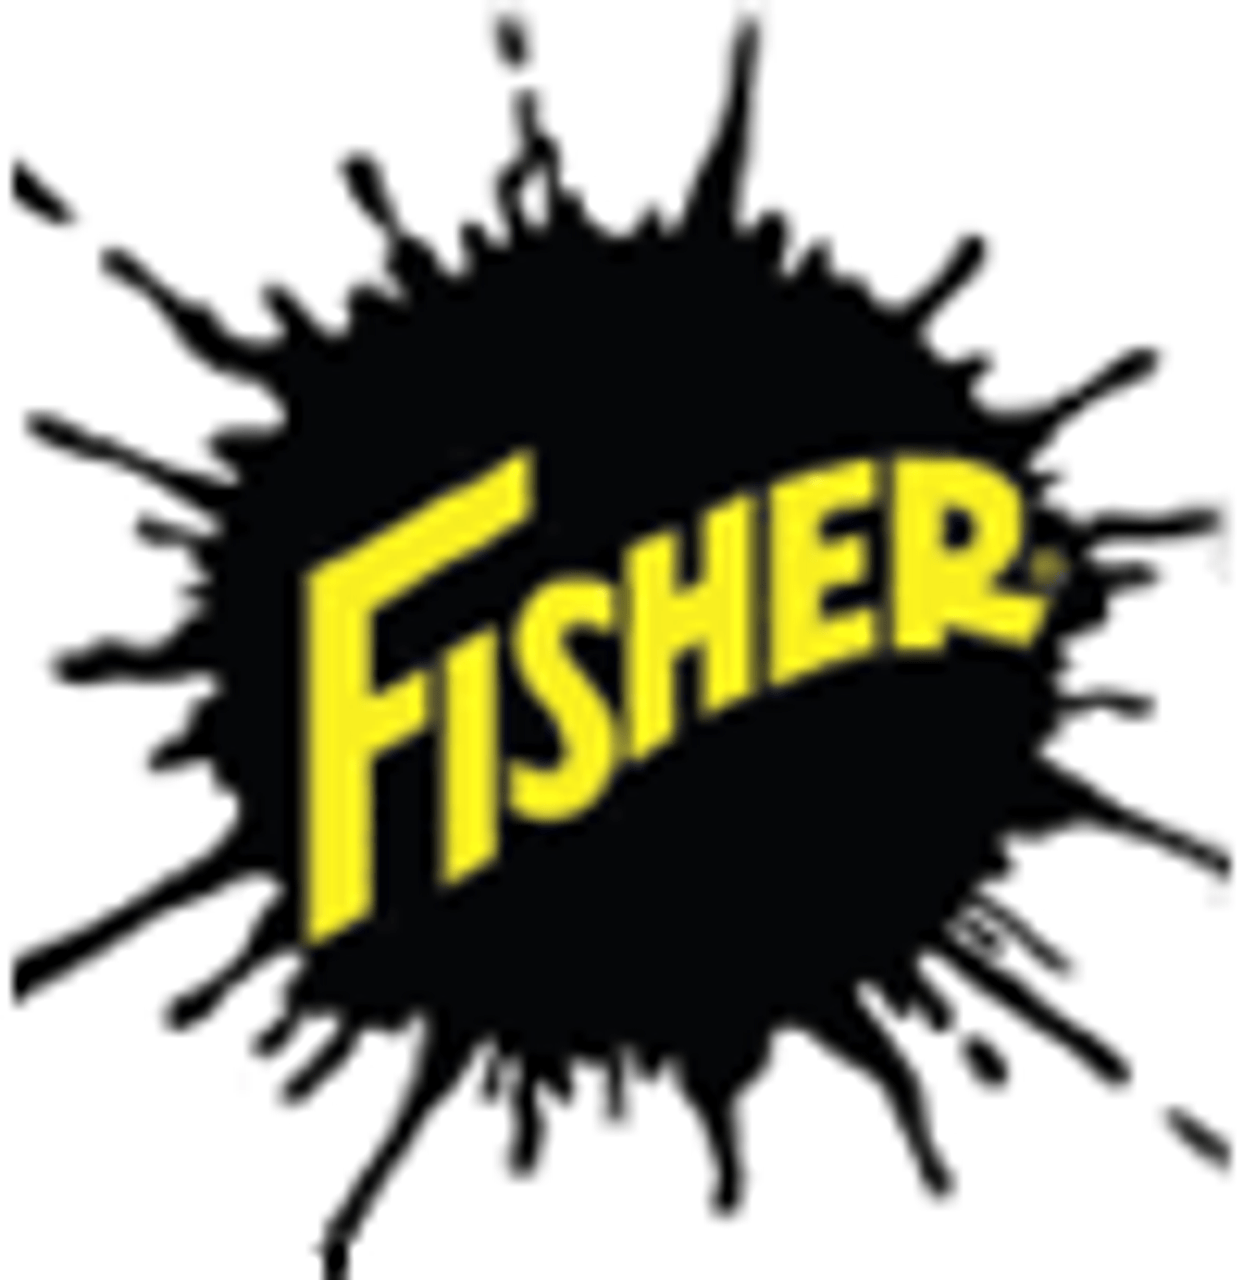 5523K - 84888  FISHER - WESTERN PACKET - 3/4 X 2-3/16 MACH PIN W/ COTTER